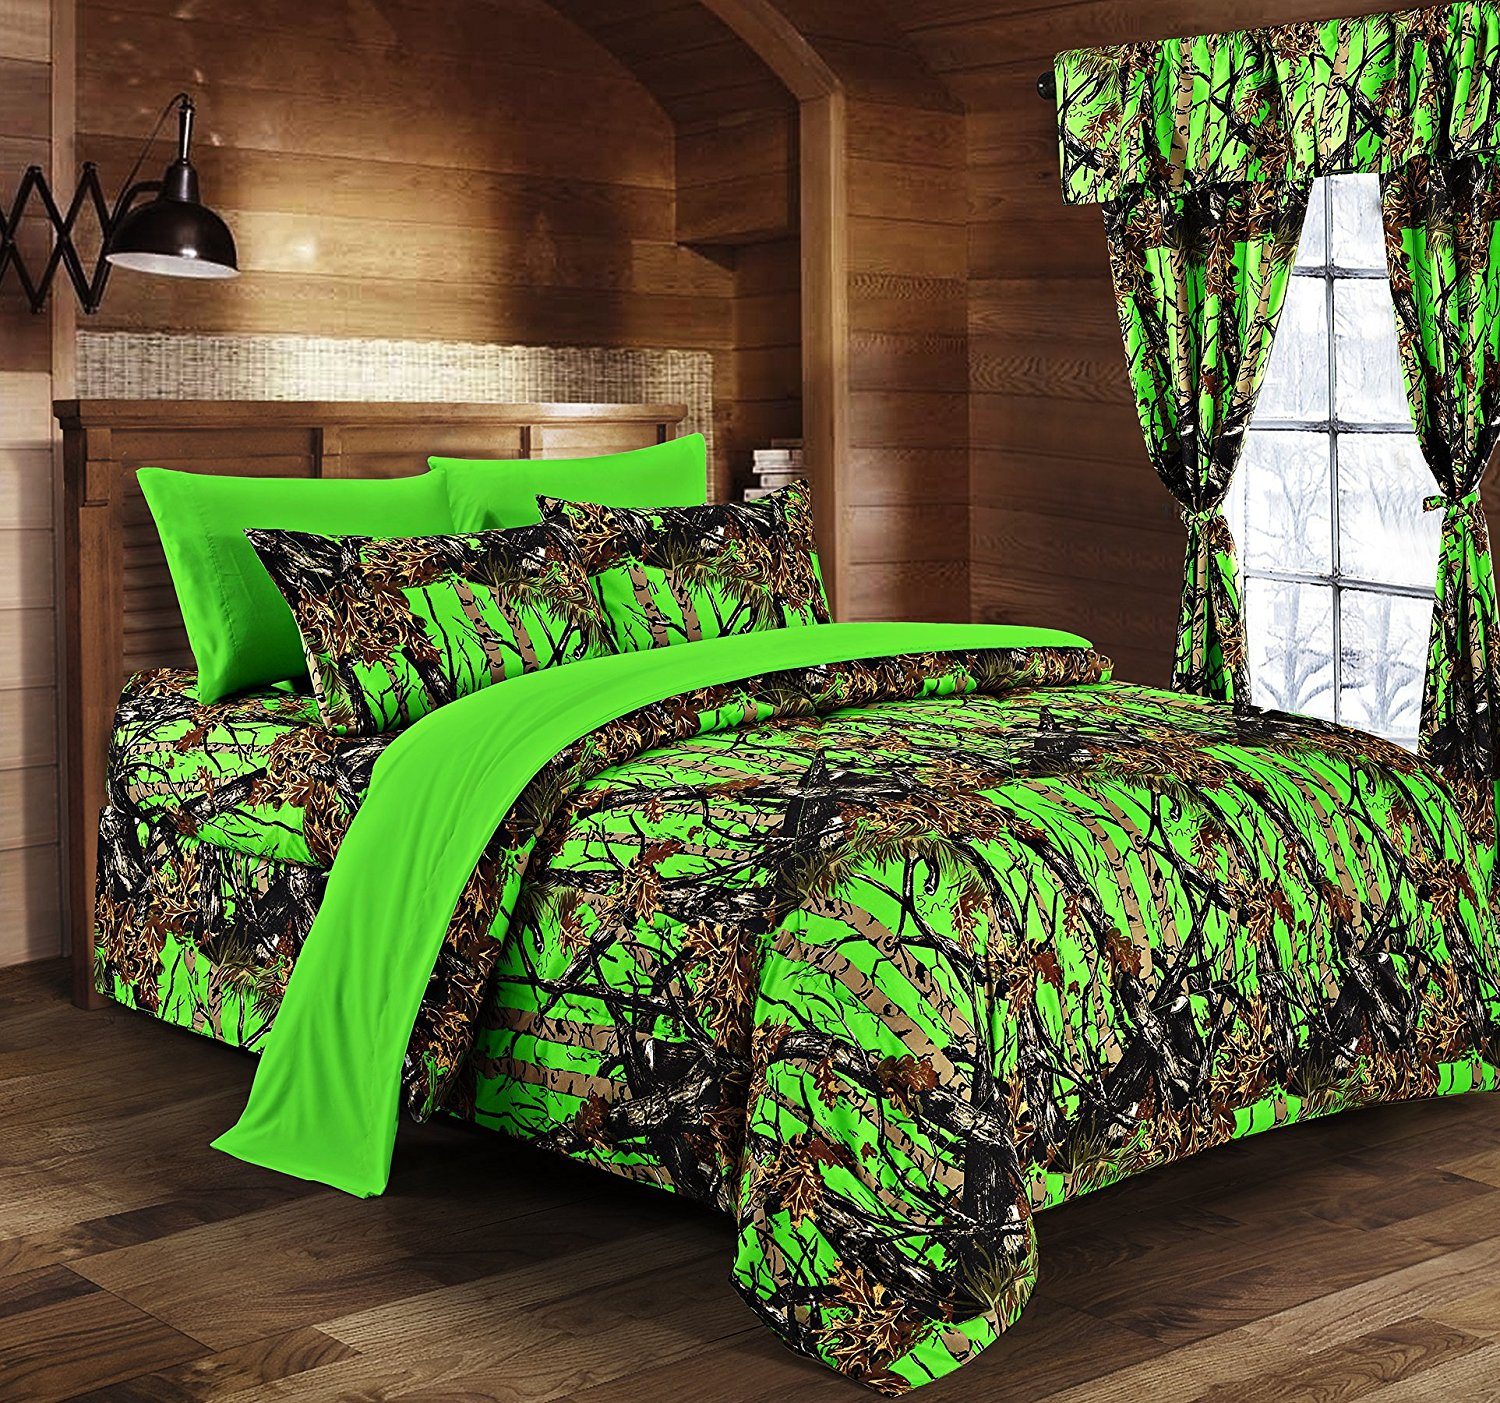 Regal Comfort - BioHazard Green Camouflage Queen 8pc Premium Luxury Comforter, Sheet, Pillowcases, and Bed Skirt Set by Camo Bedding Set For Hunters Teens Boys and Girls